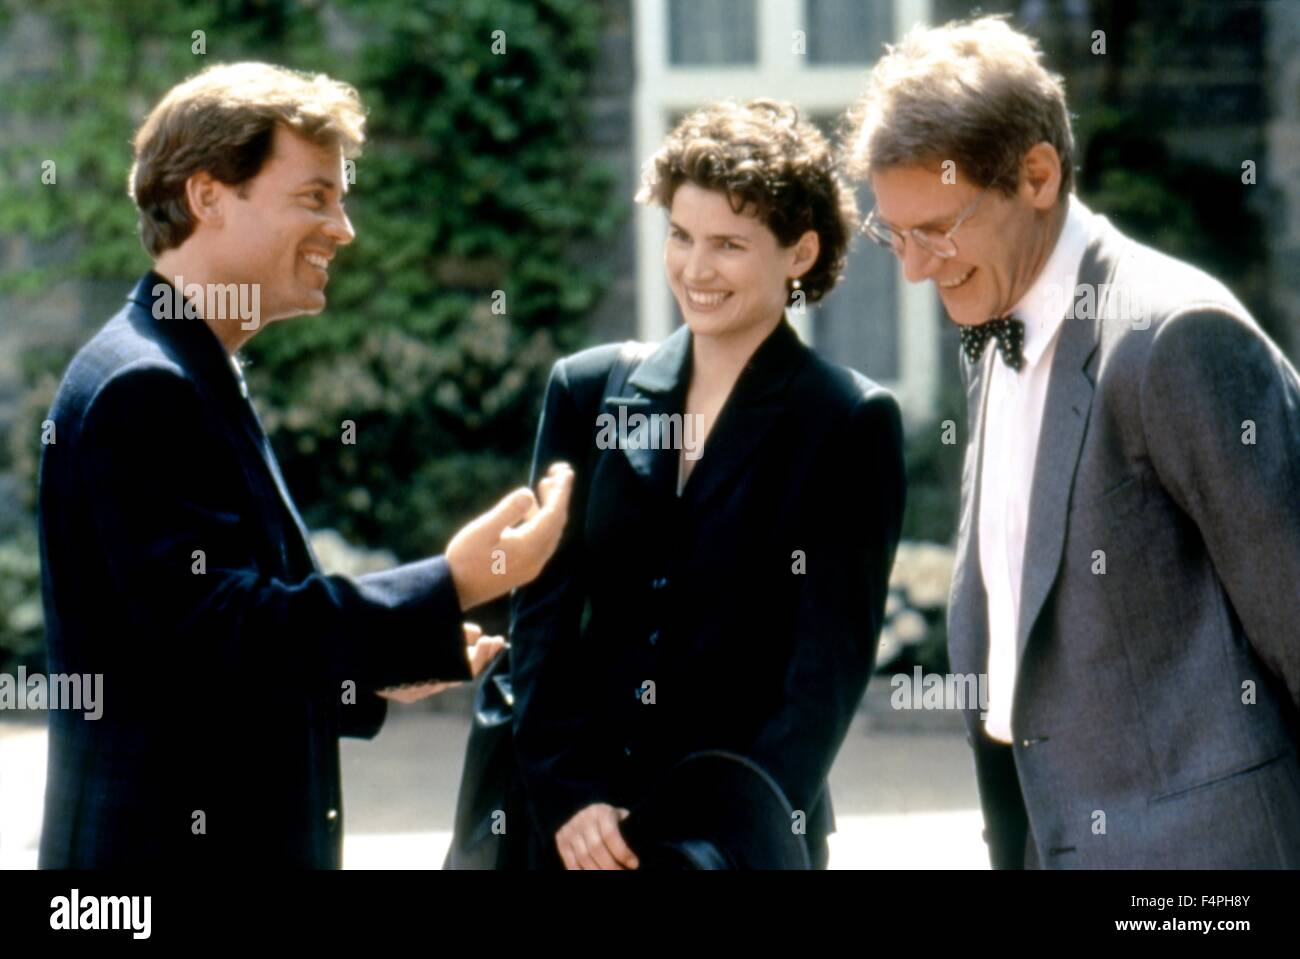 Greg Kinnear, Julia Ormond and Harrison Ford / Sabrina / 1995 directed by Sydney Pollack - Stock Image